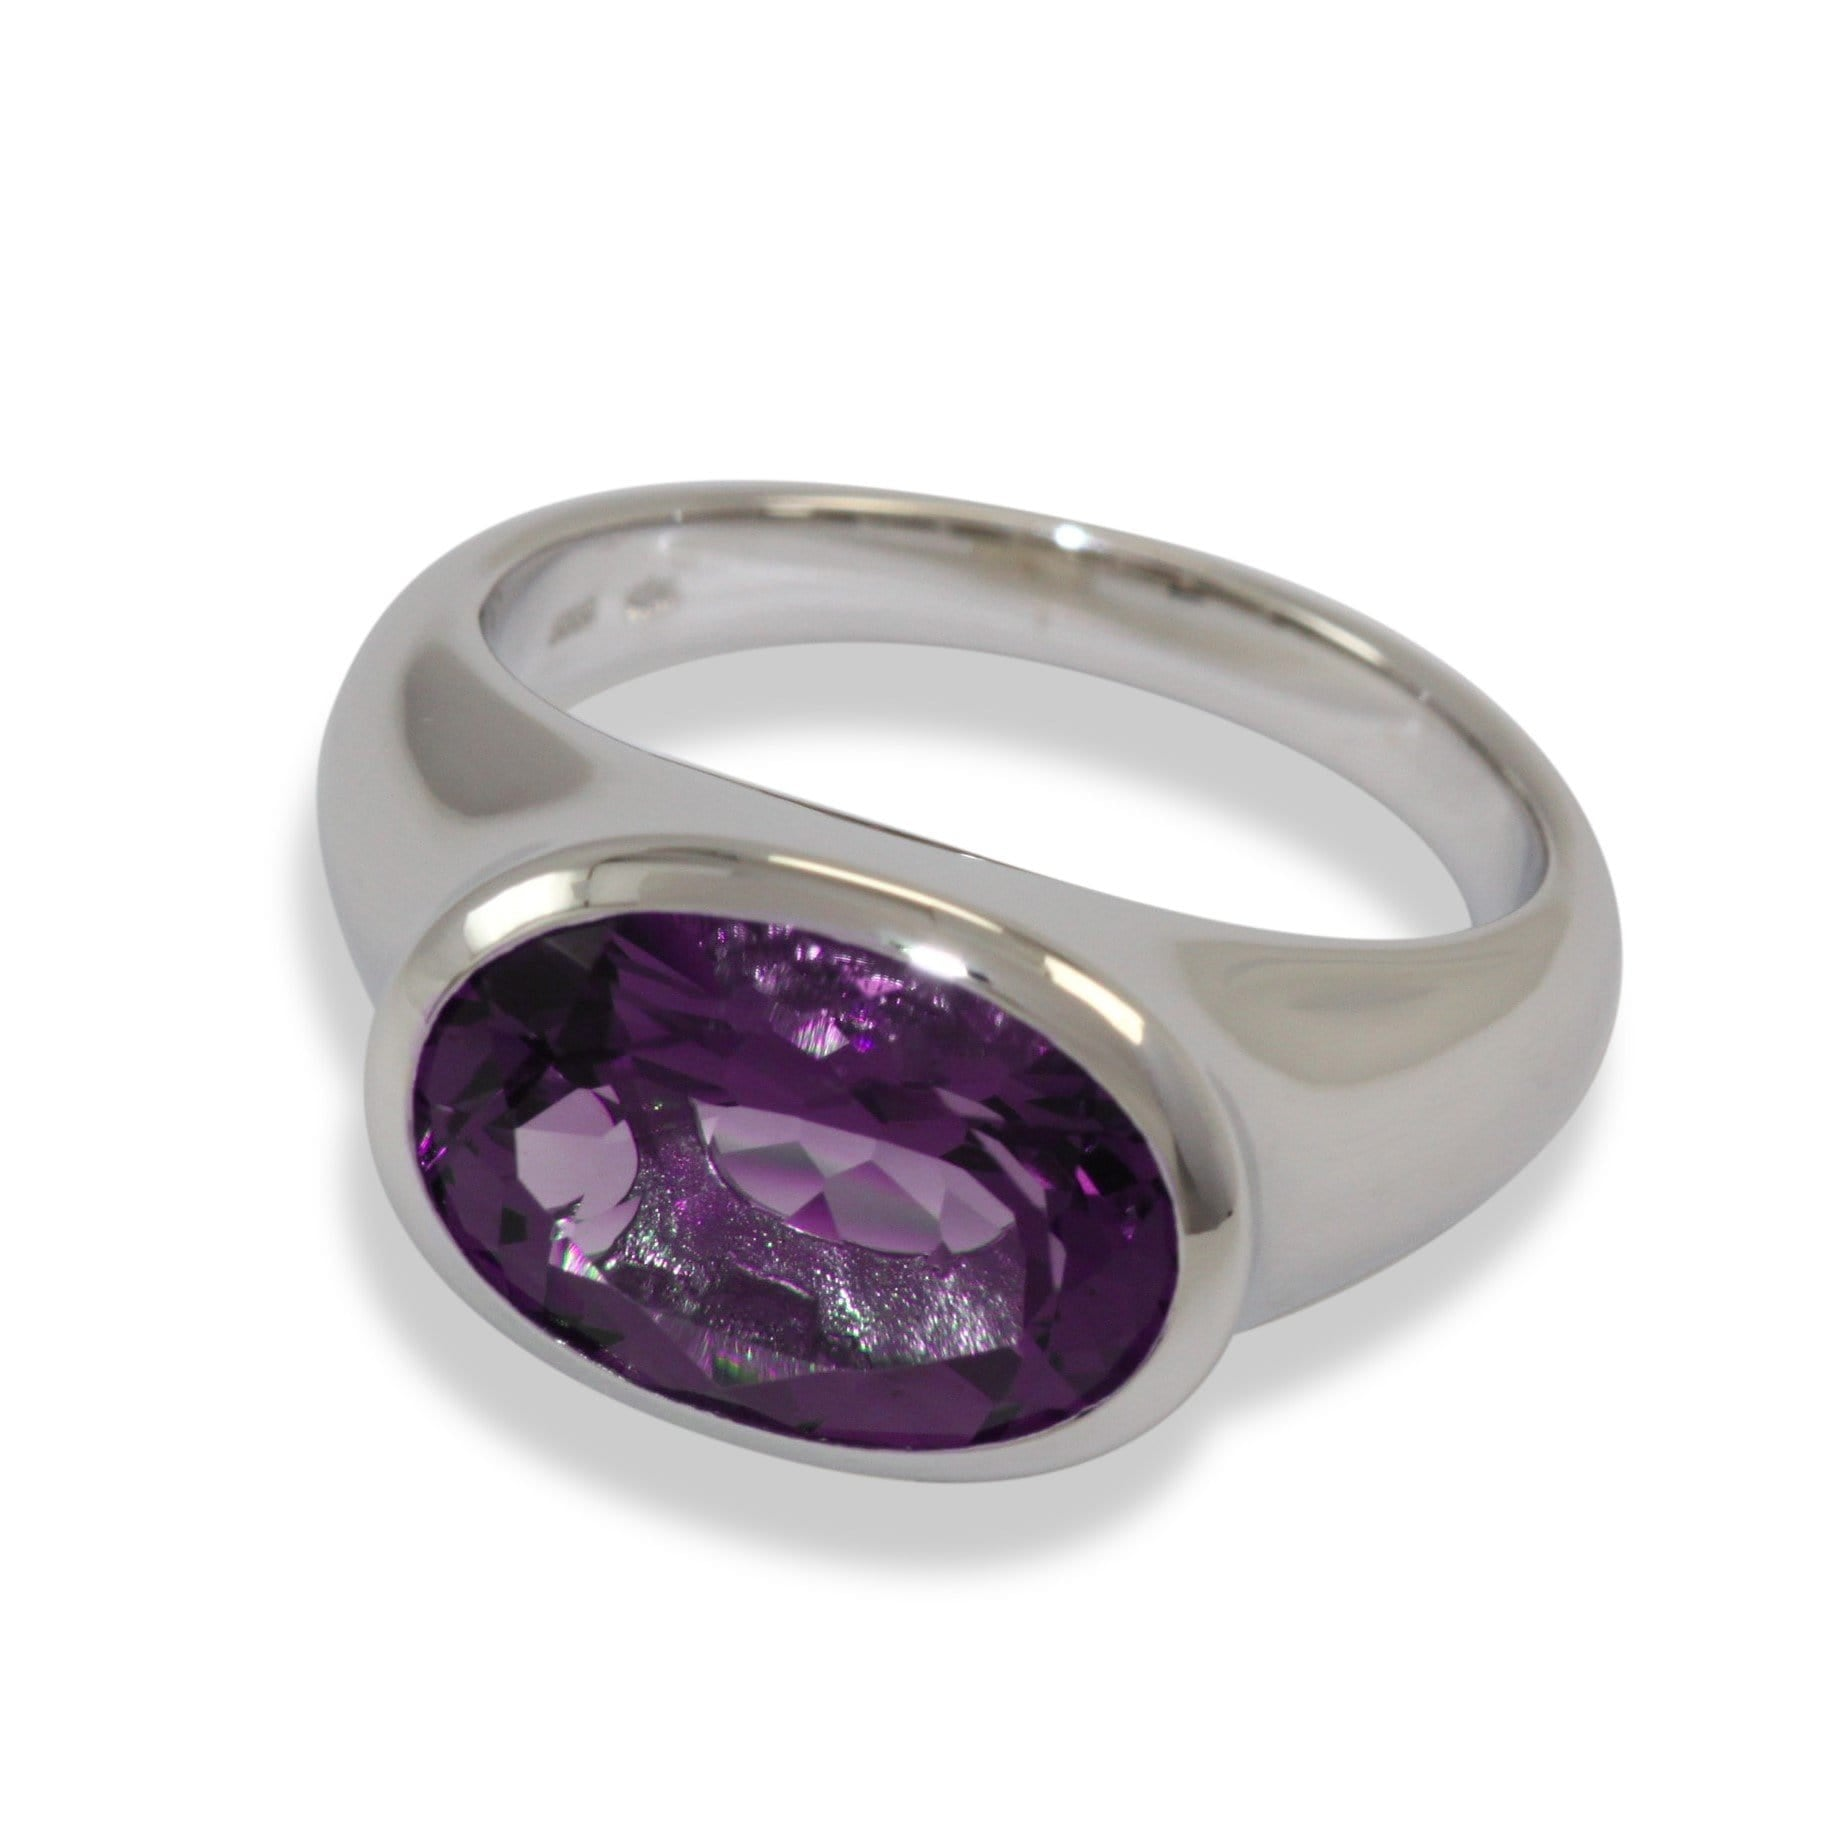 Sterling Silver Amethyst Ring - 42/82617-AM-Breuning-Renee Taylor Gallery